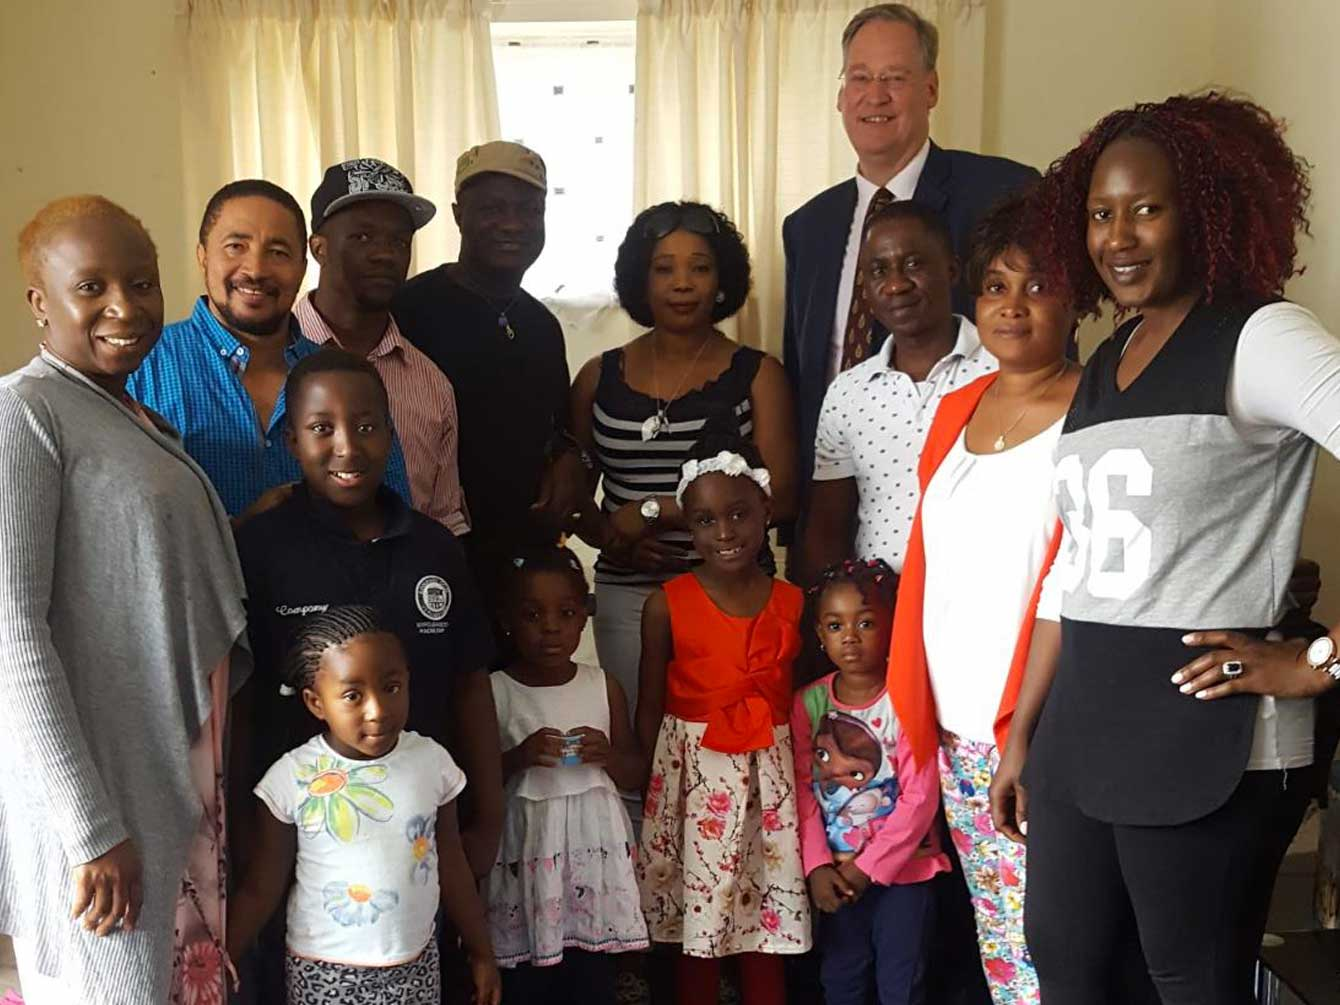 High Sheriff of West Sussex (and now a trustee of Sussex Community Foundation) visited the Sierra Leone Sussex Association